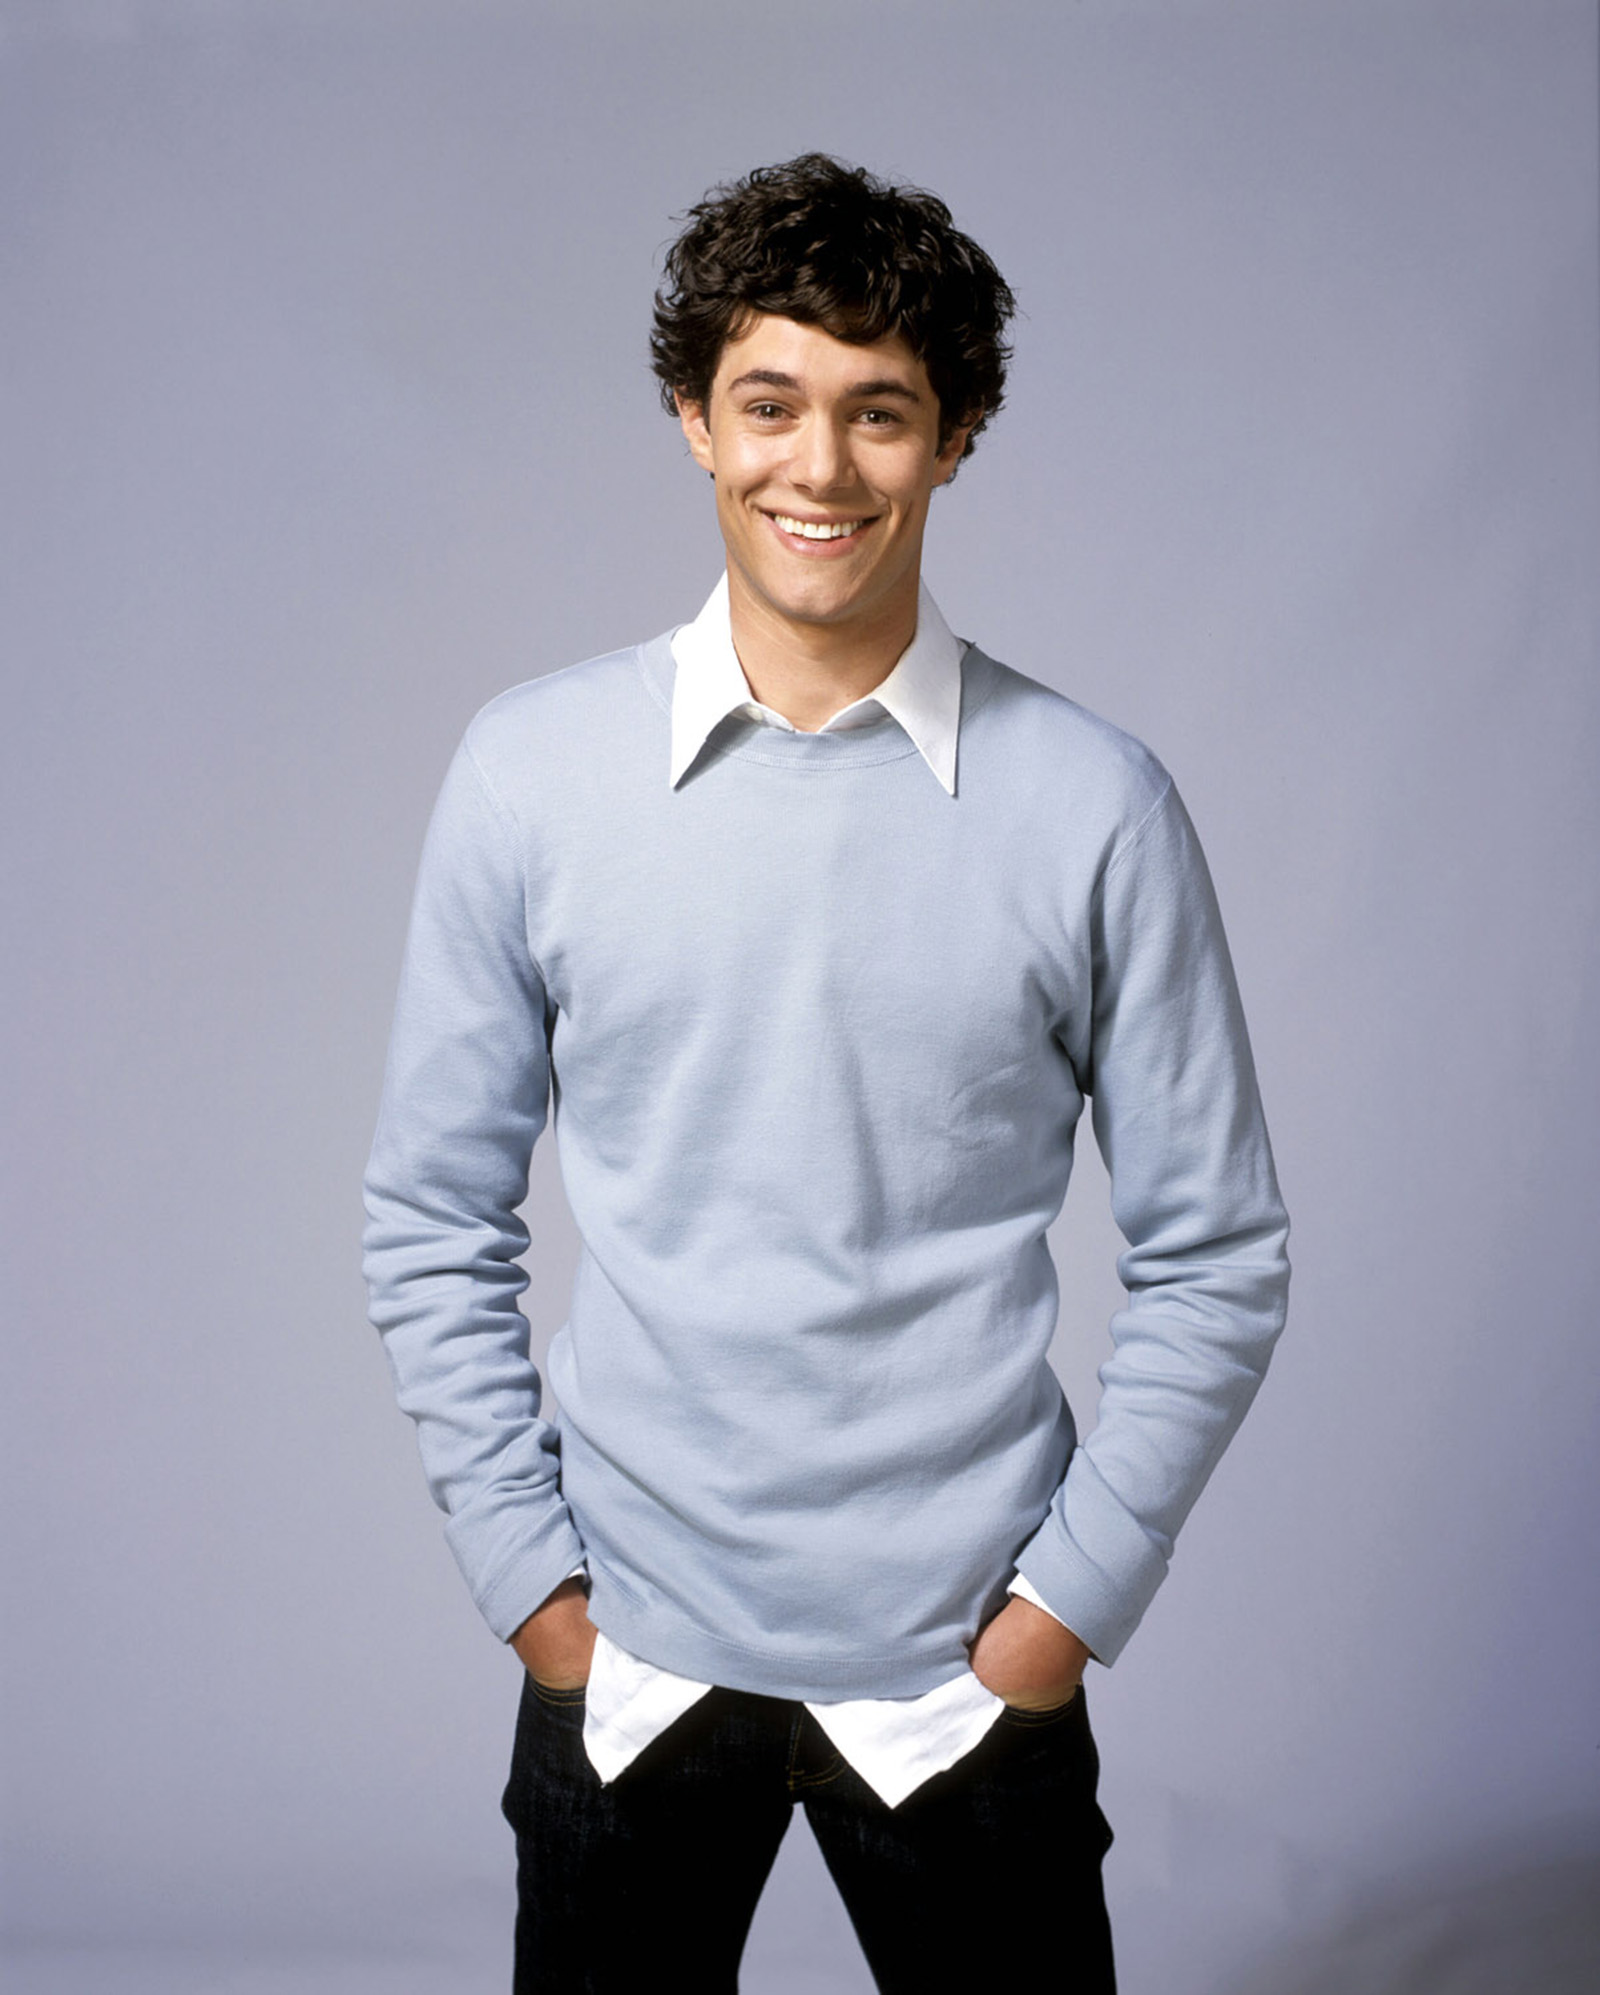 The Oc Season 1 Gallagher Rowan Mckenzie Brody Bilson Clarke